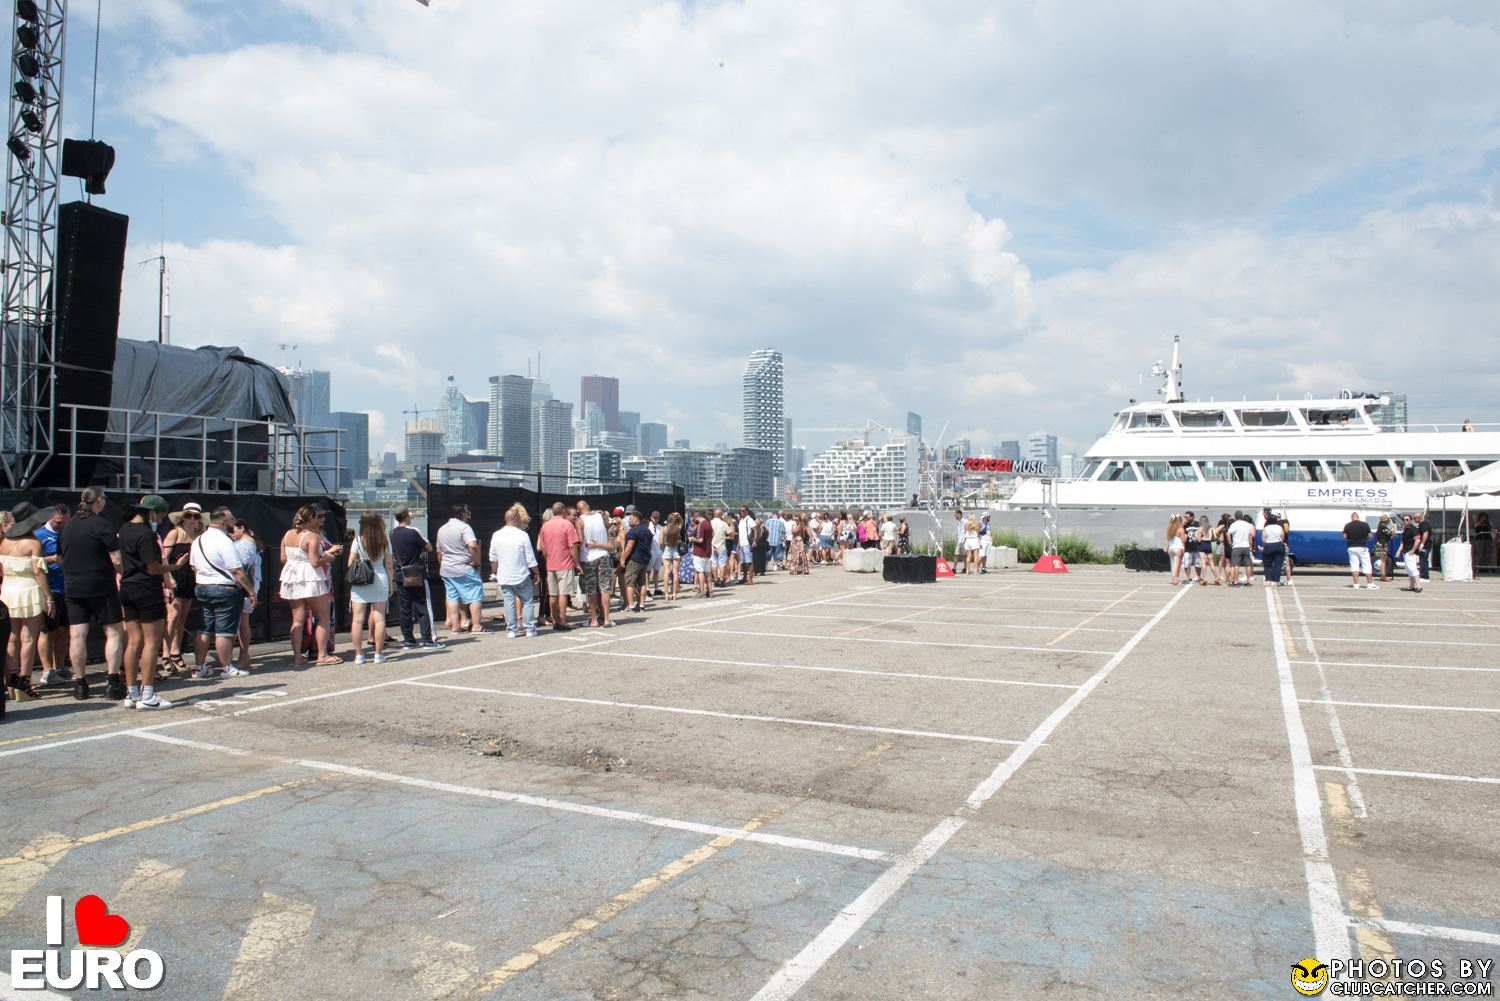 Empress Of Canada party venue photo 37 - August 22nd, 2021